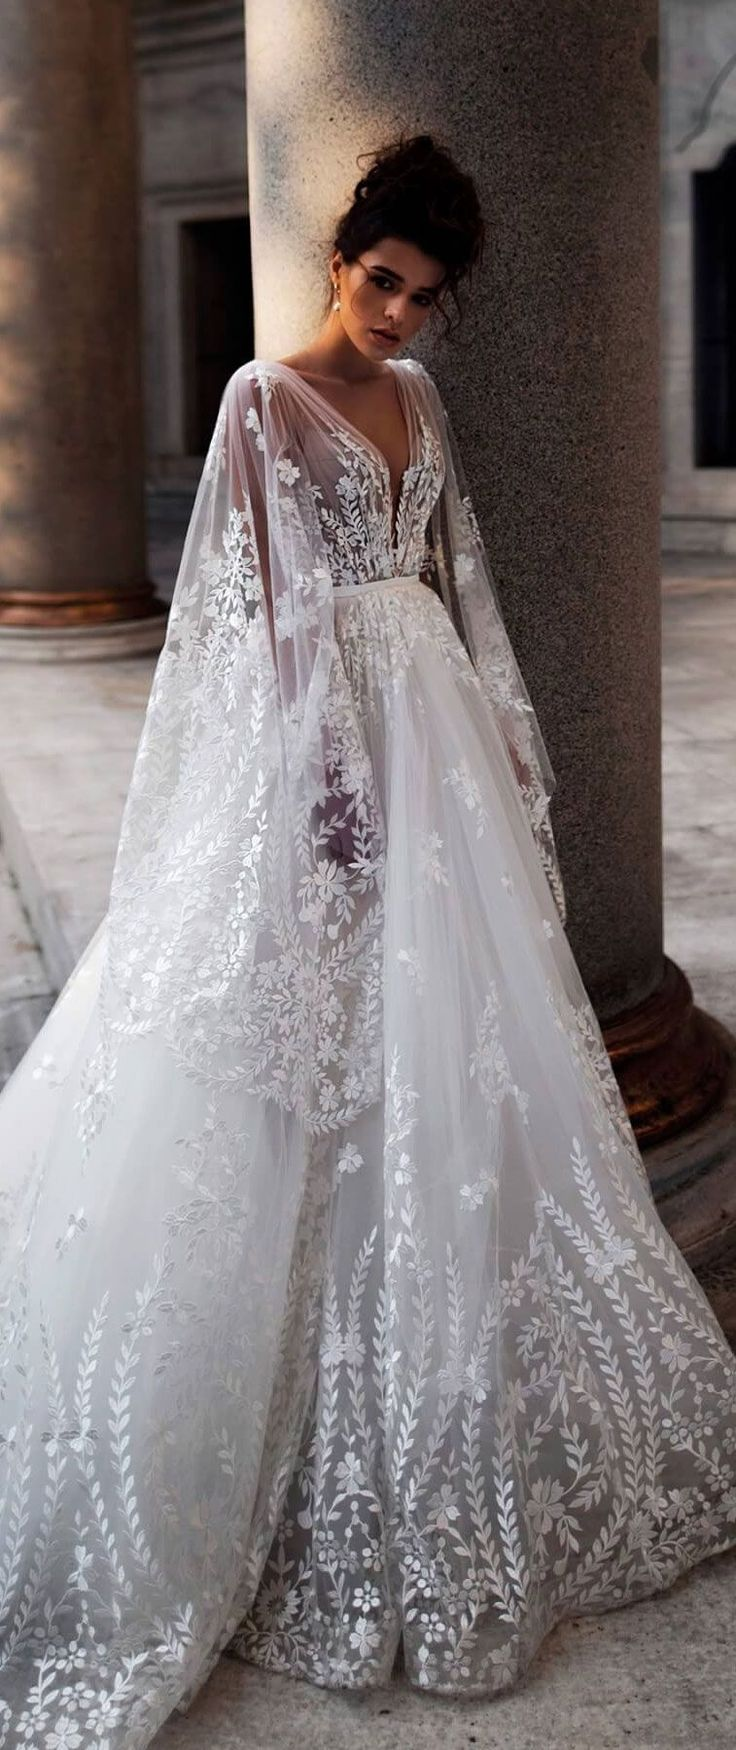 Blammobiamo wedding dresses everything wedding pinterest